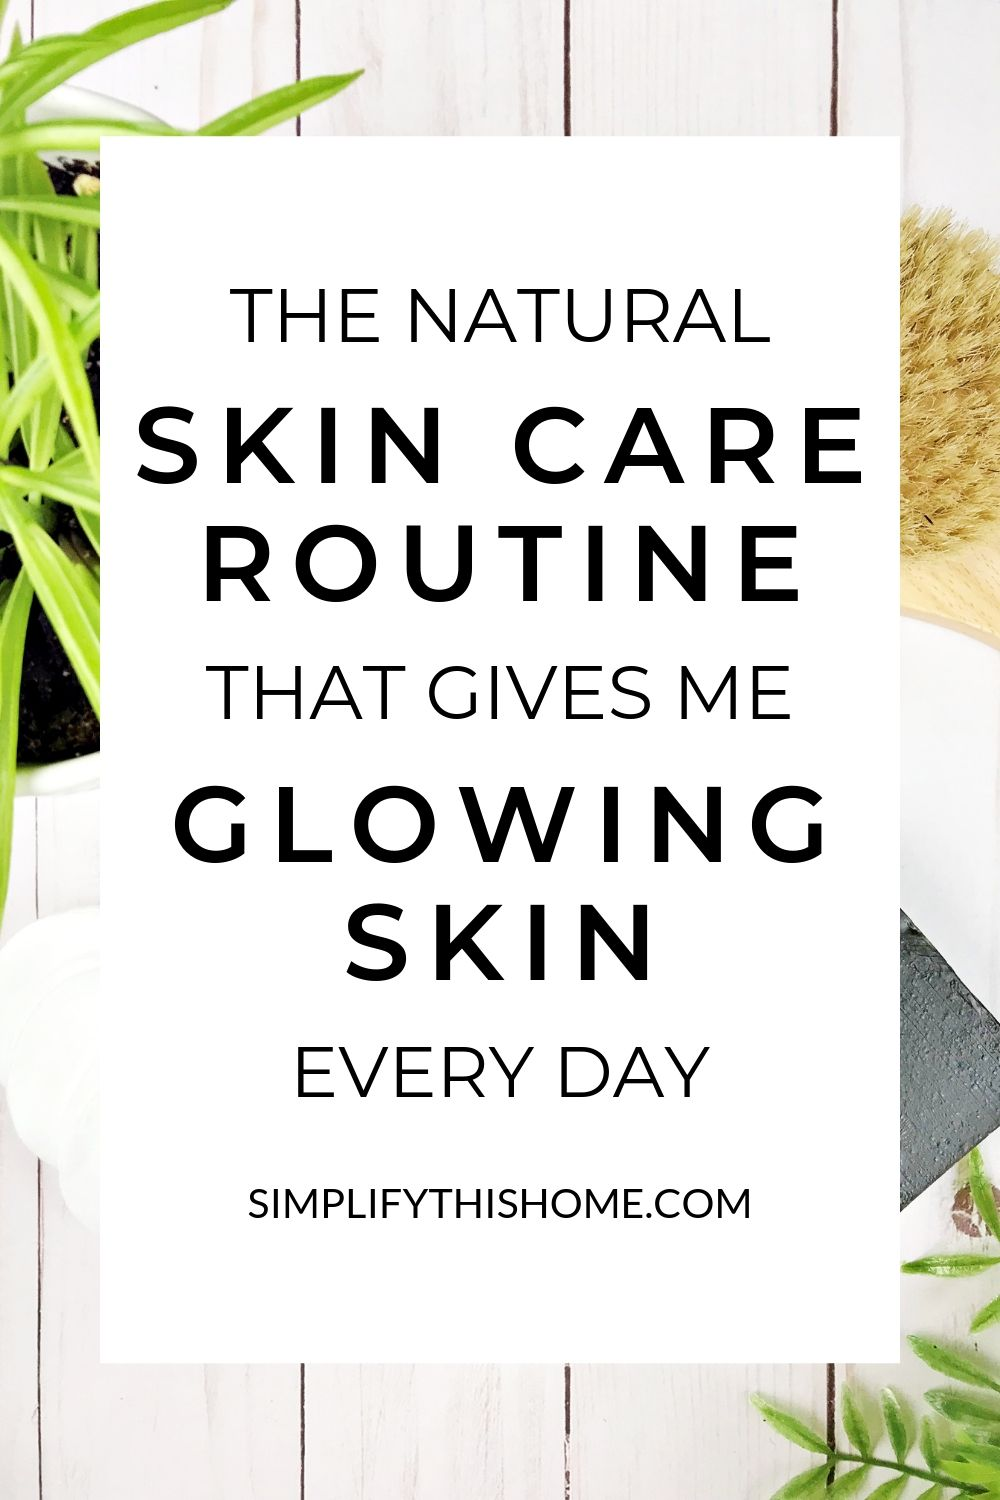 The Natural Skin Care Routine That Gives Me Glowing Skin Every Day